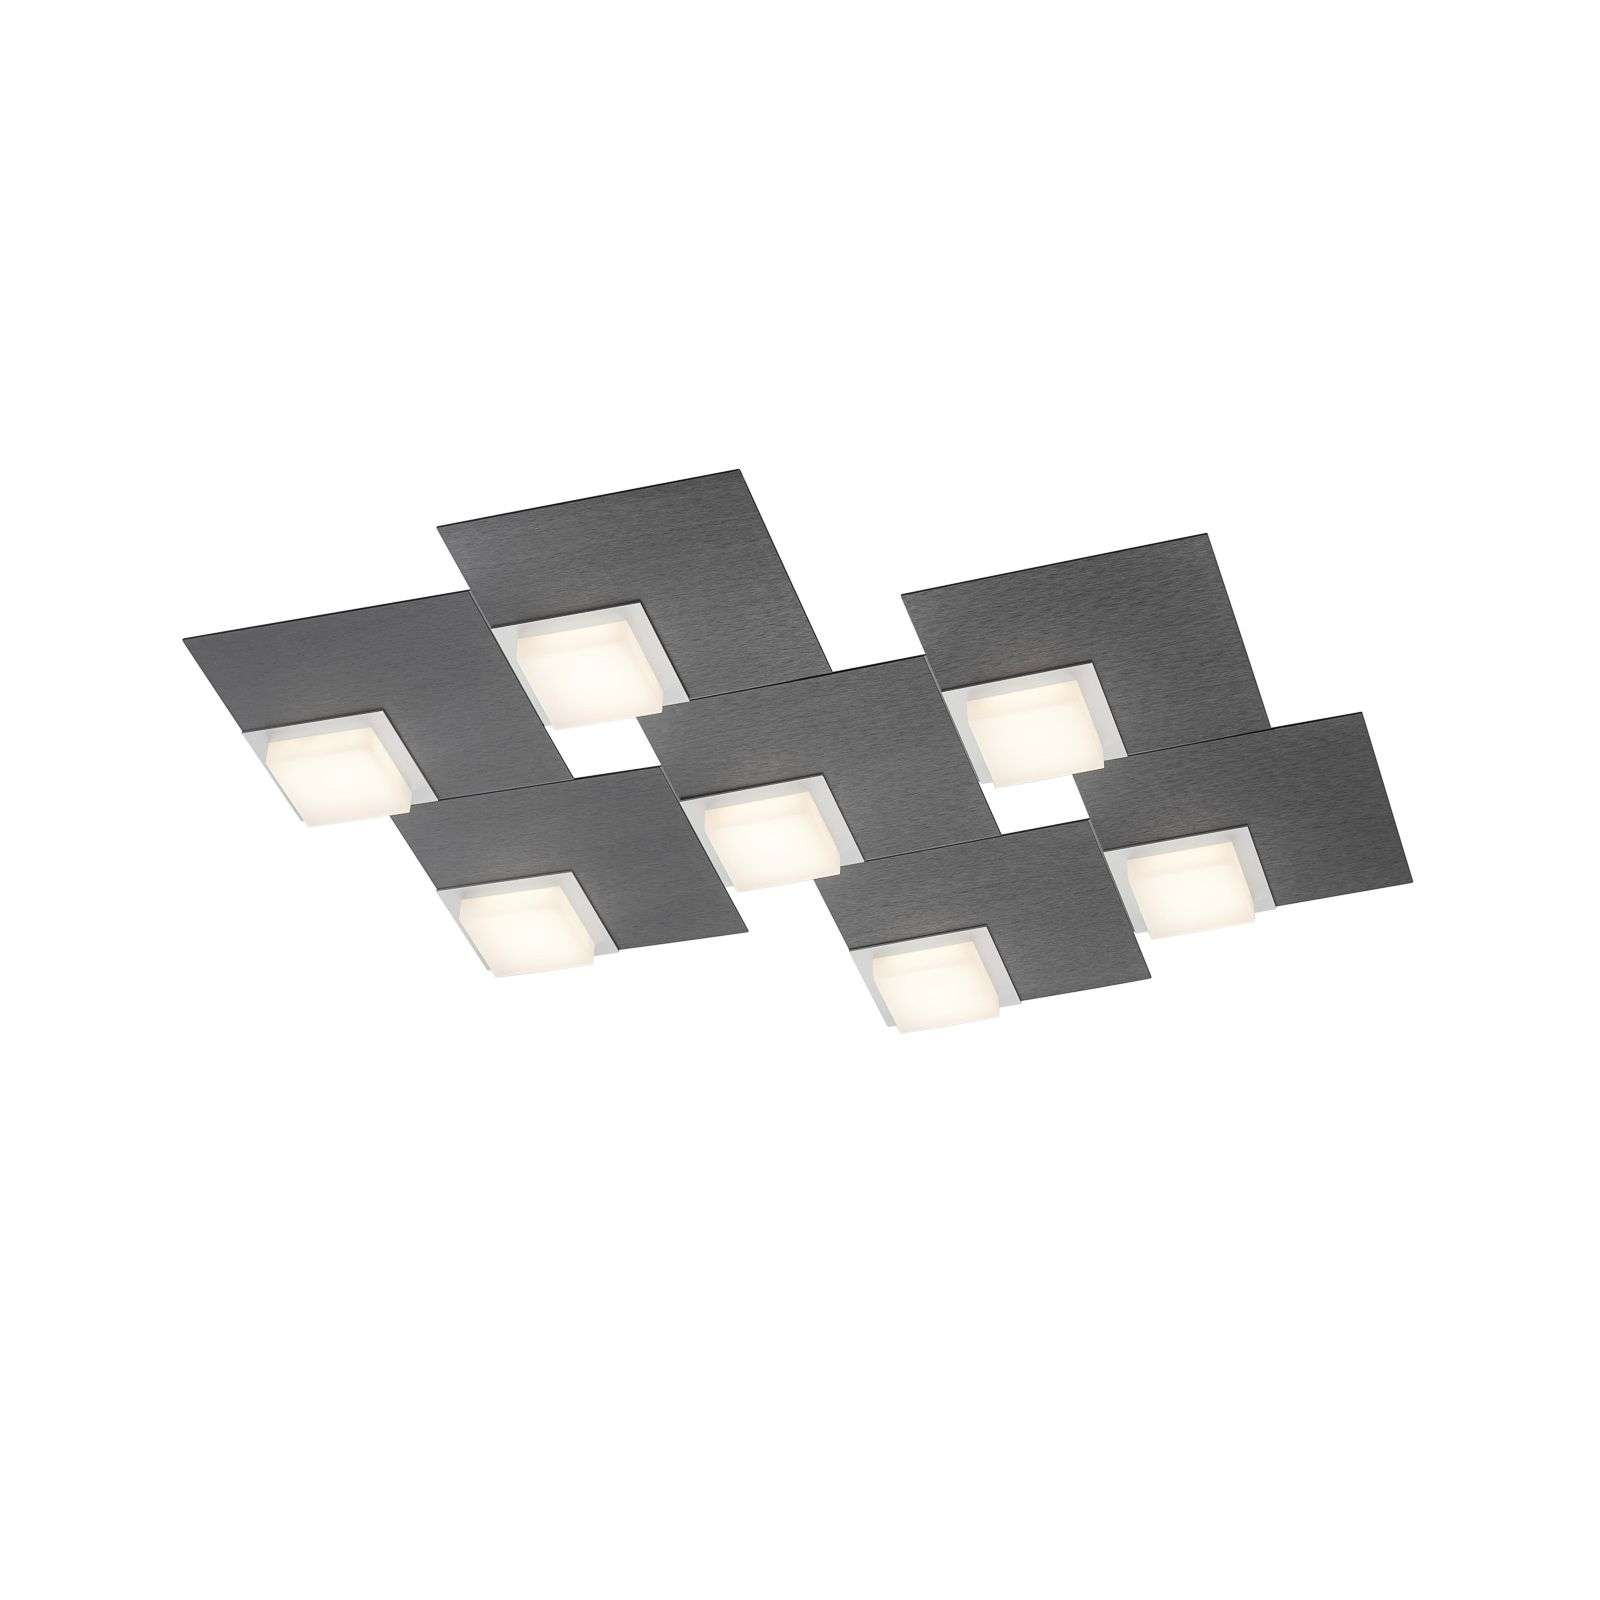 BANKAMP Quadro plafón LED 64 W, antracita